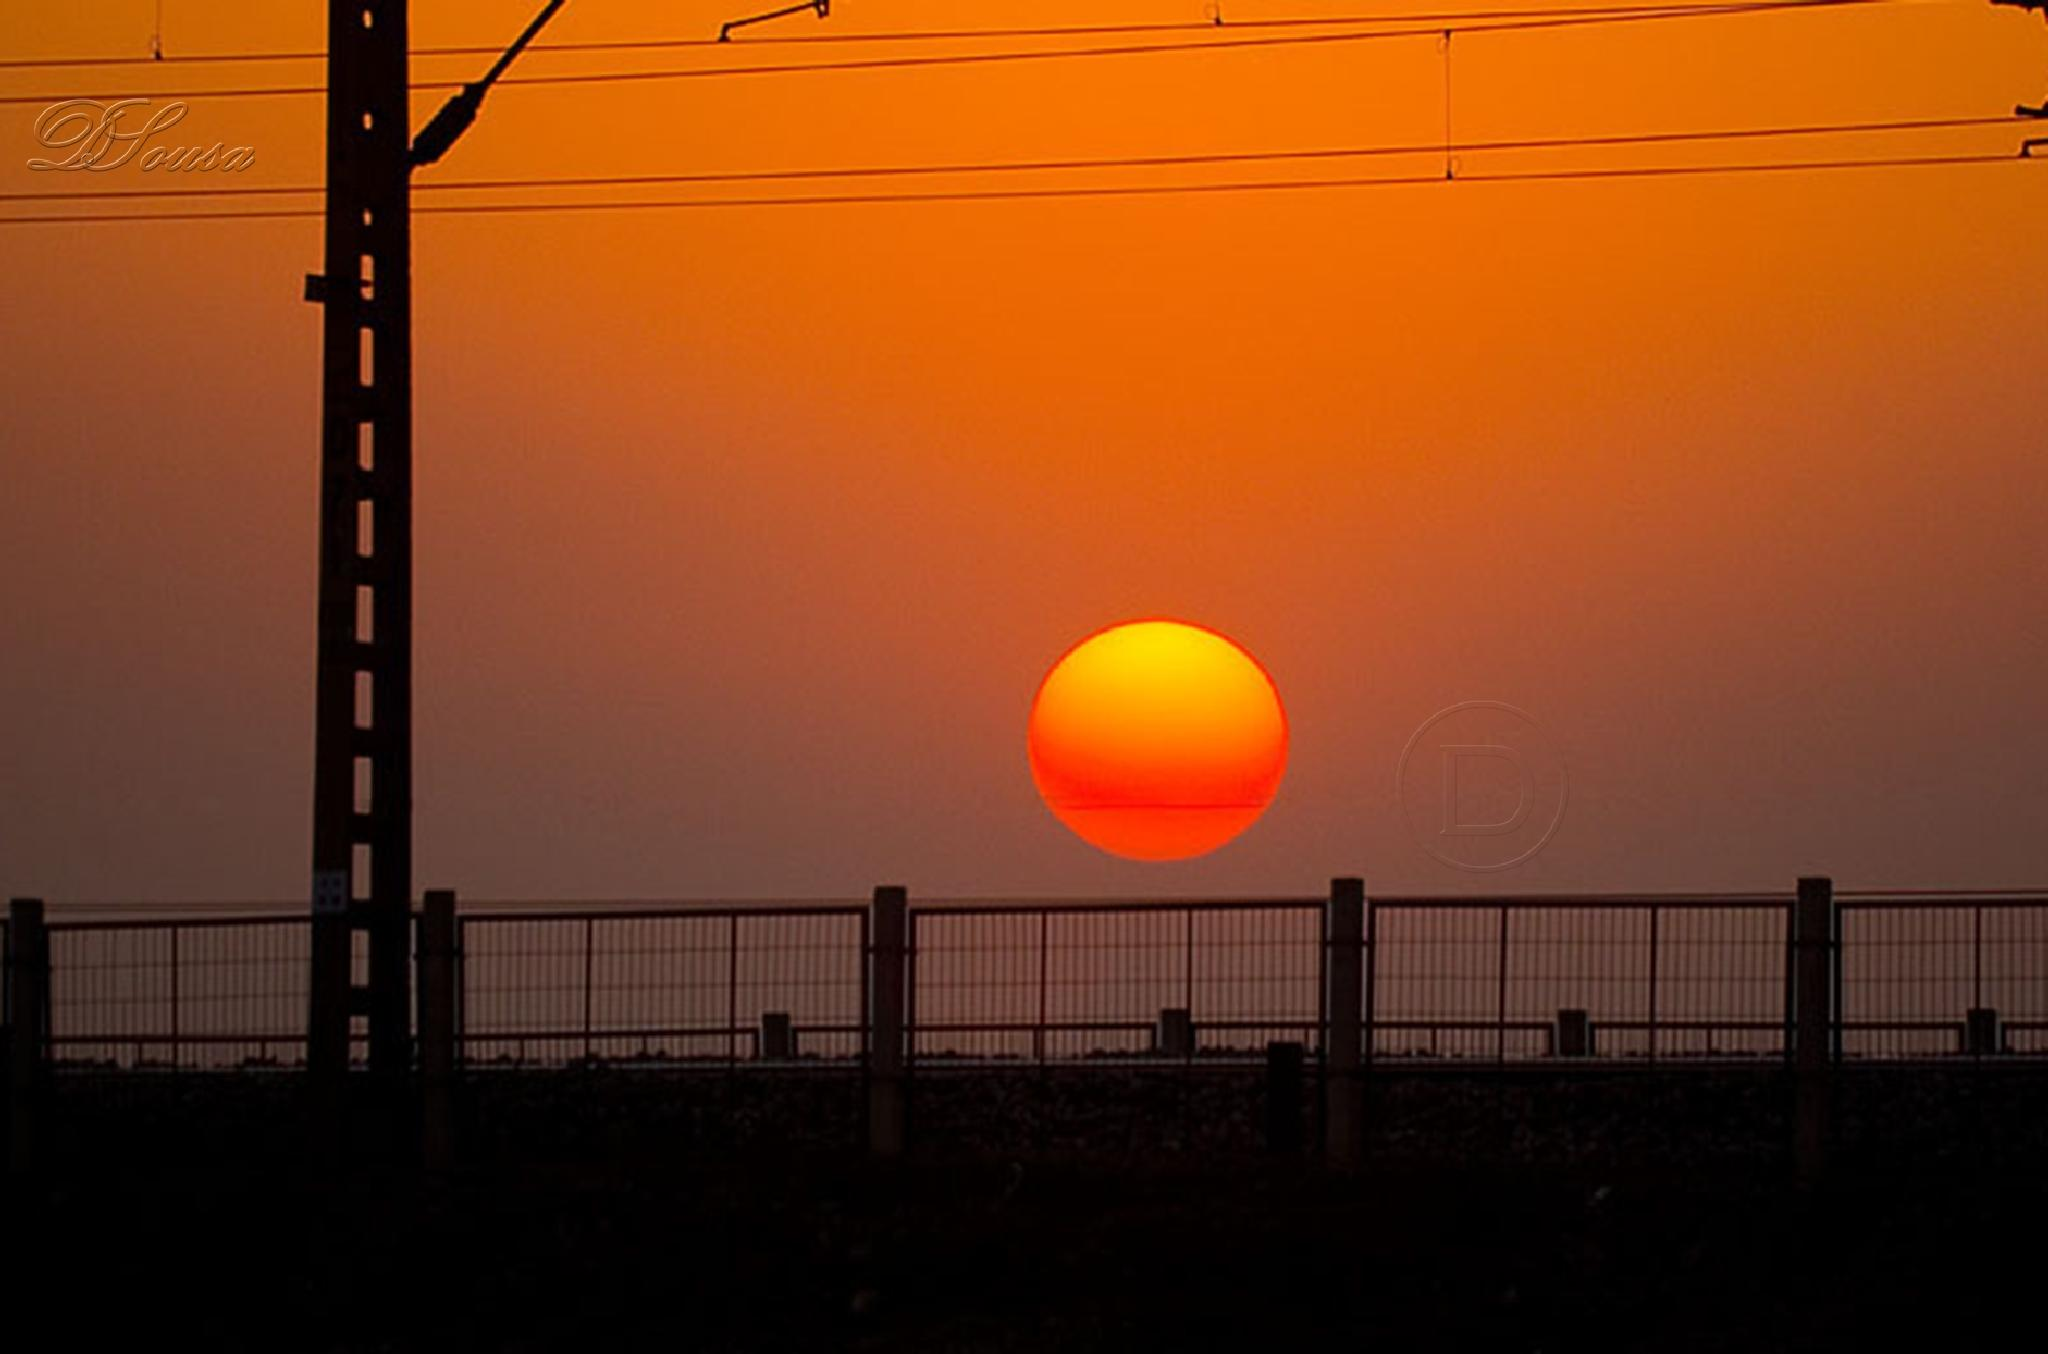 Sunset In the Railroad Track  by Daniel André Sousa